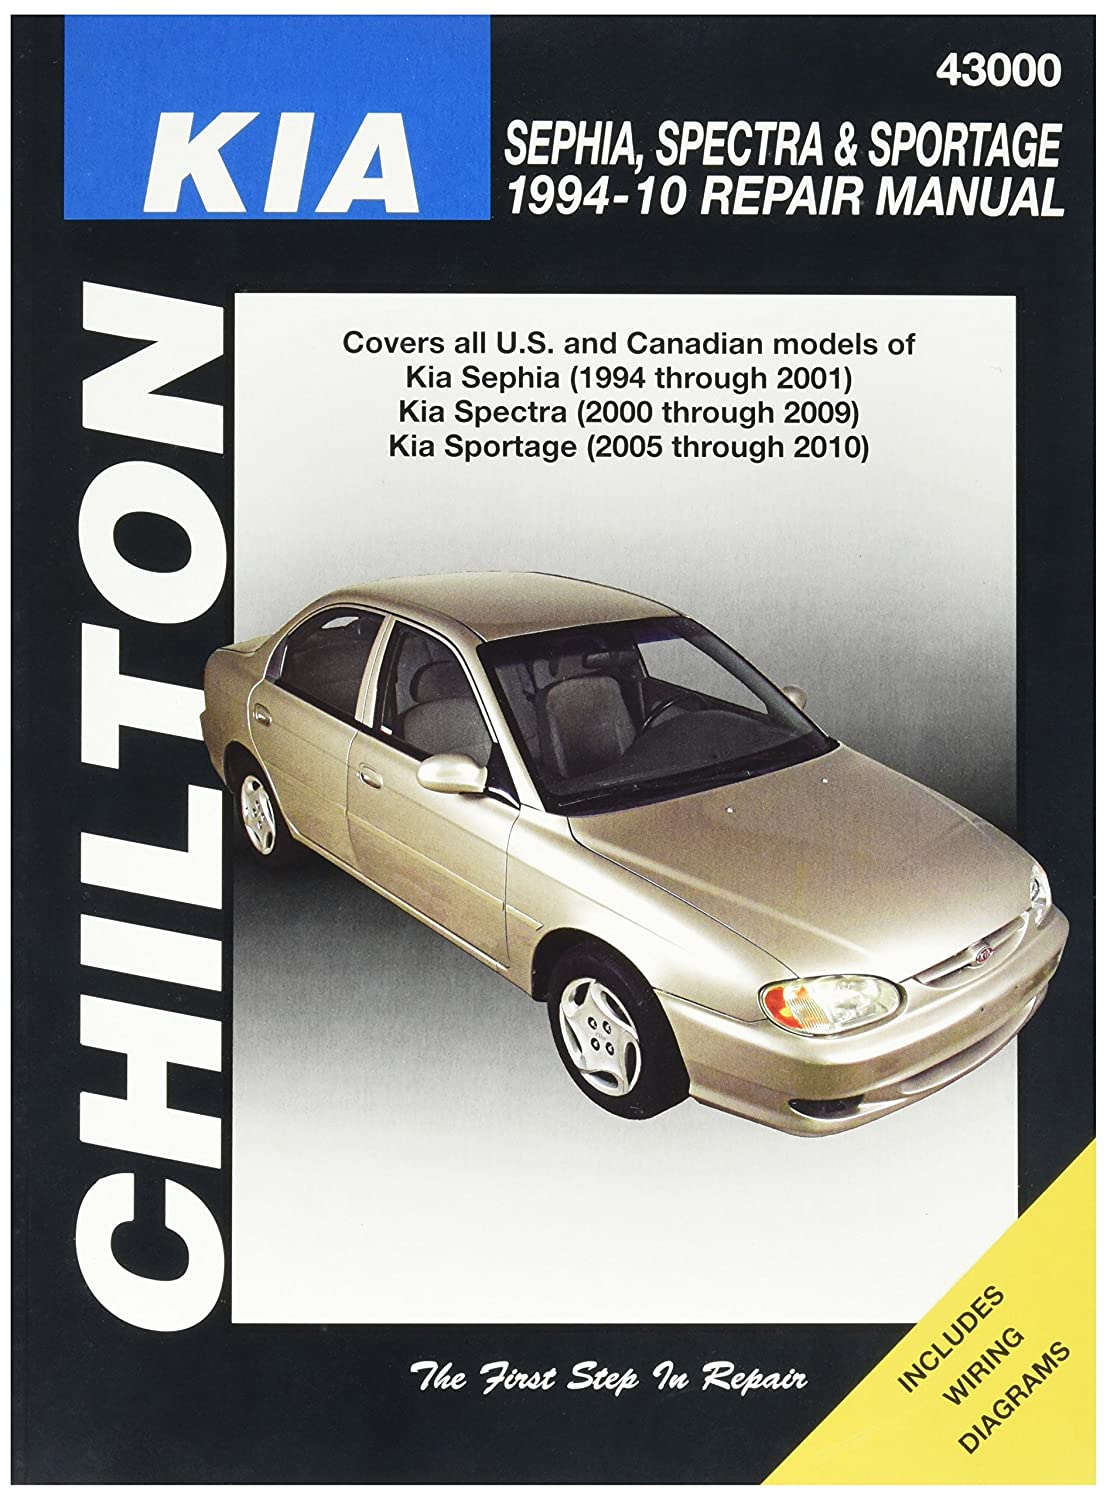 amazon com chilton kia repair manual automotive rh amazon com 98 Kia 4 Speed Manual 98 Kia 4 Speed Manual